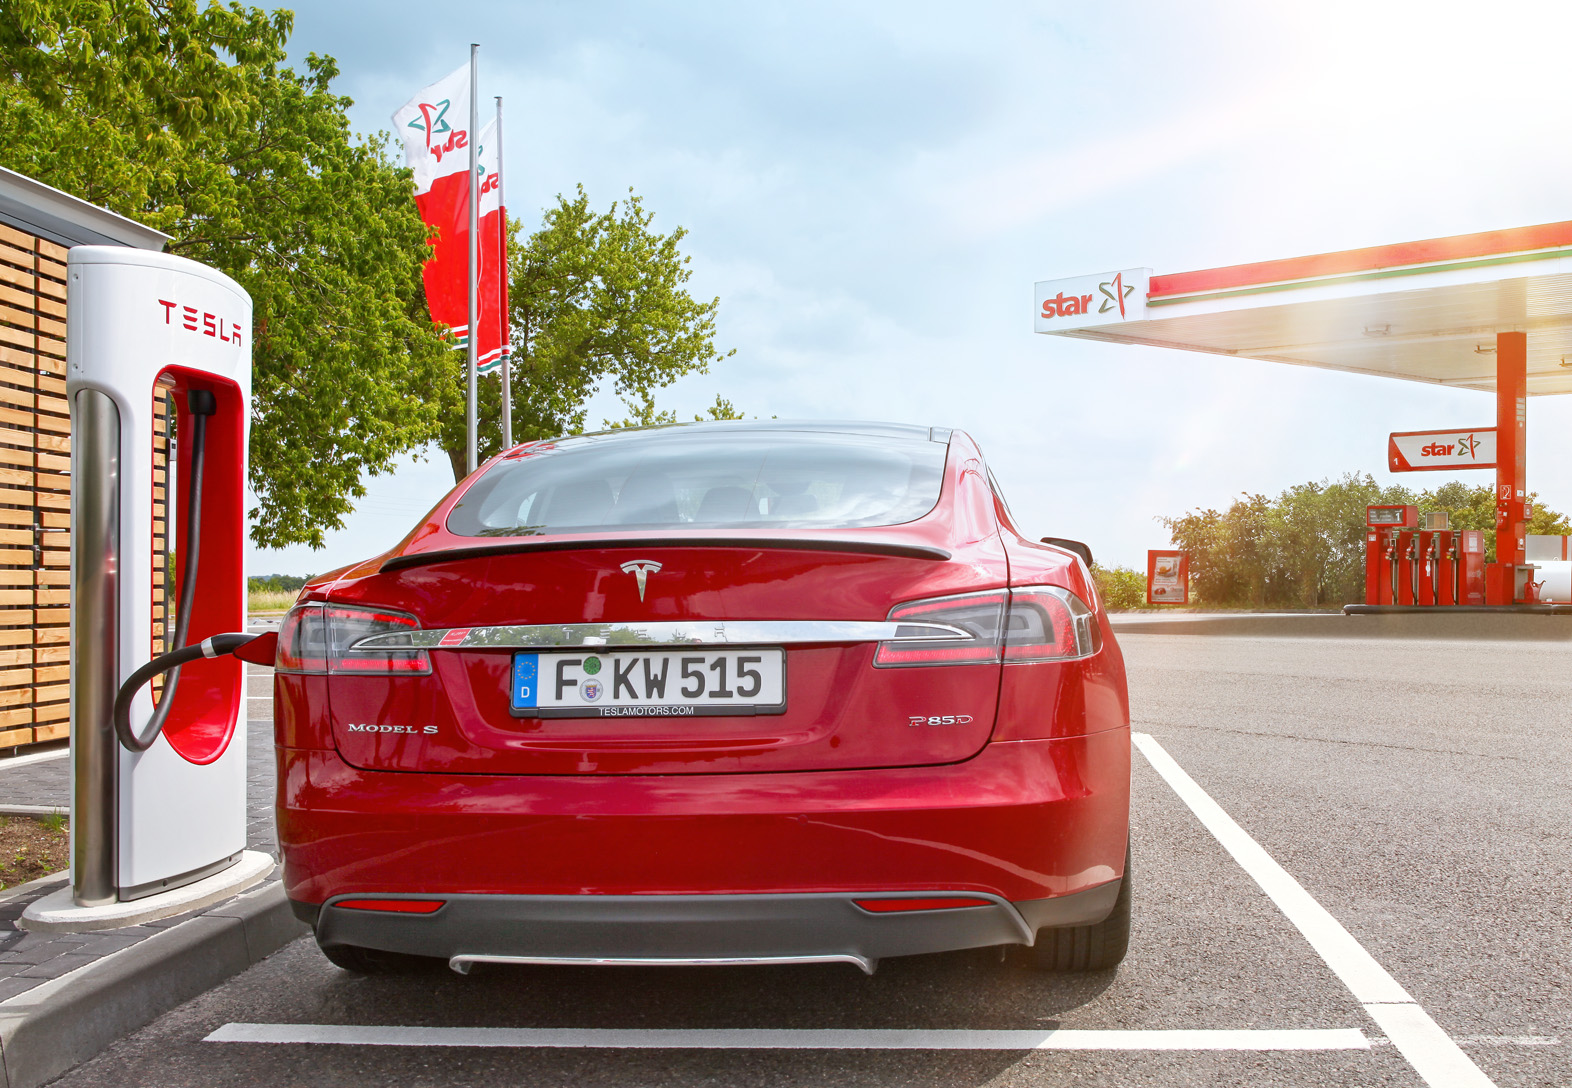 star Tankstellen_Alternative Mobilitaet_Tesla Super Charger ©ORLEN Deutschland.jpg